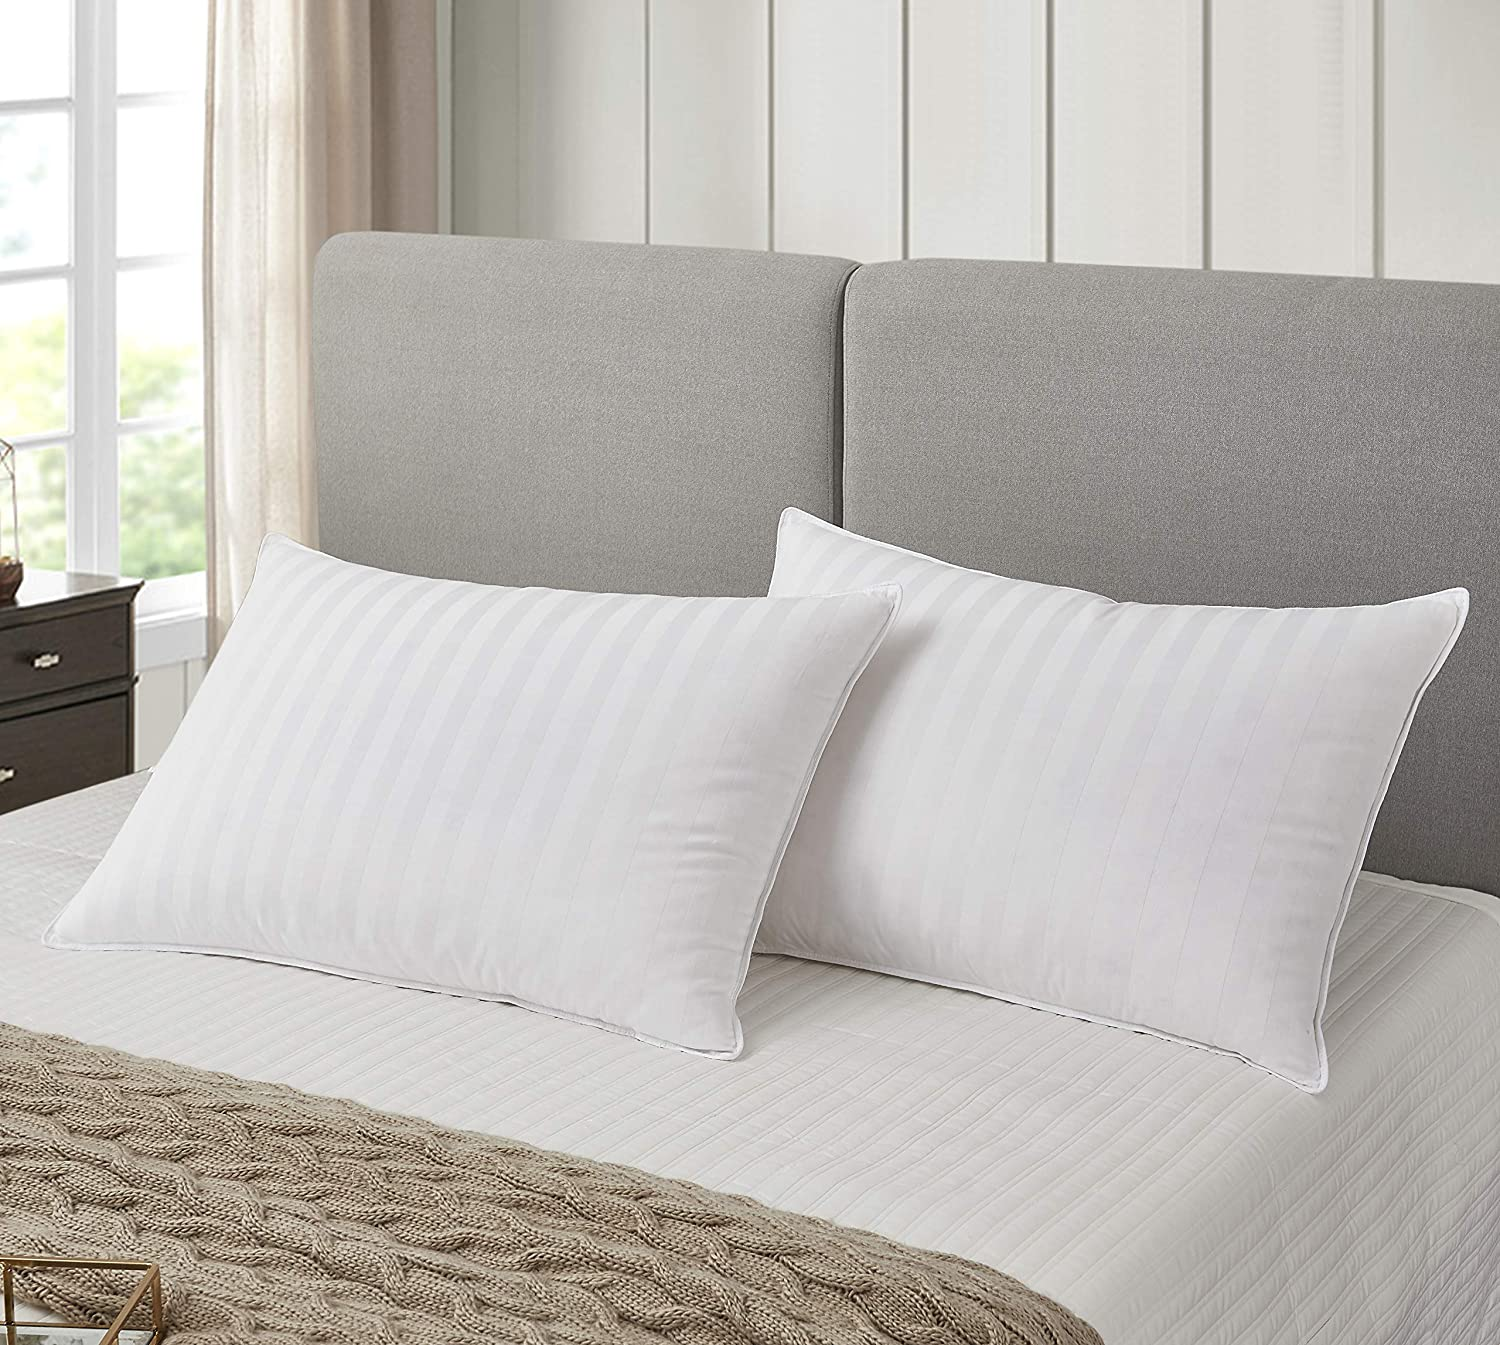 Blue Ridge Home Fashions White Siberian 500 Thread Count Cotton Damask Pattern Premium Pillow-Natural Hypoallergenic Fill-Made in USA, Jumbo